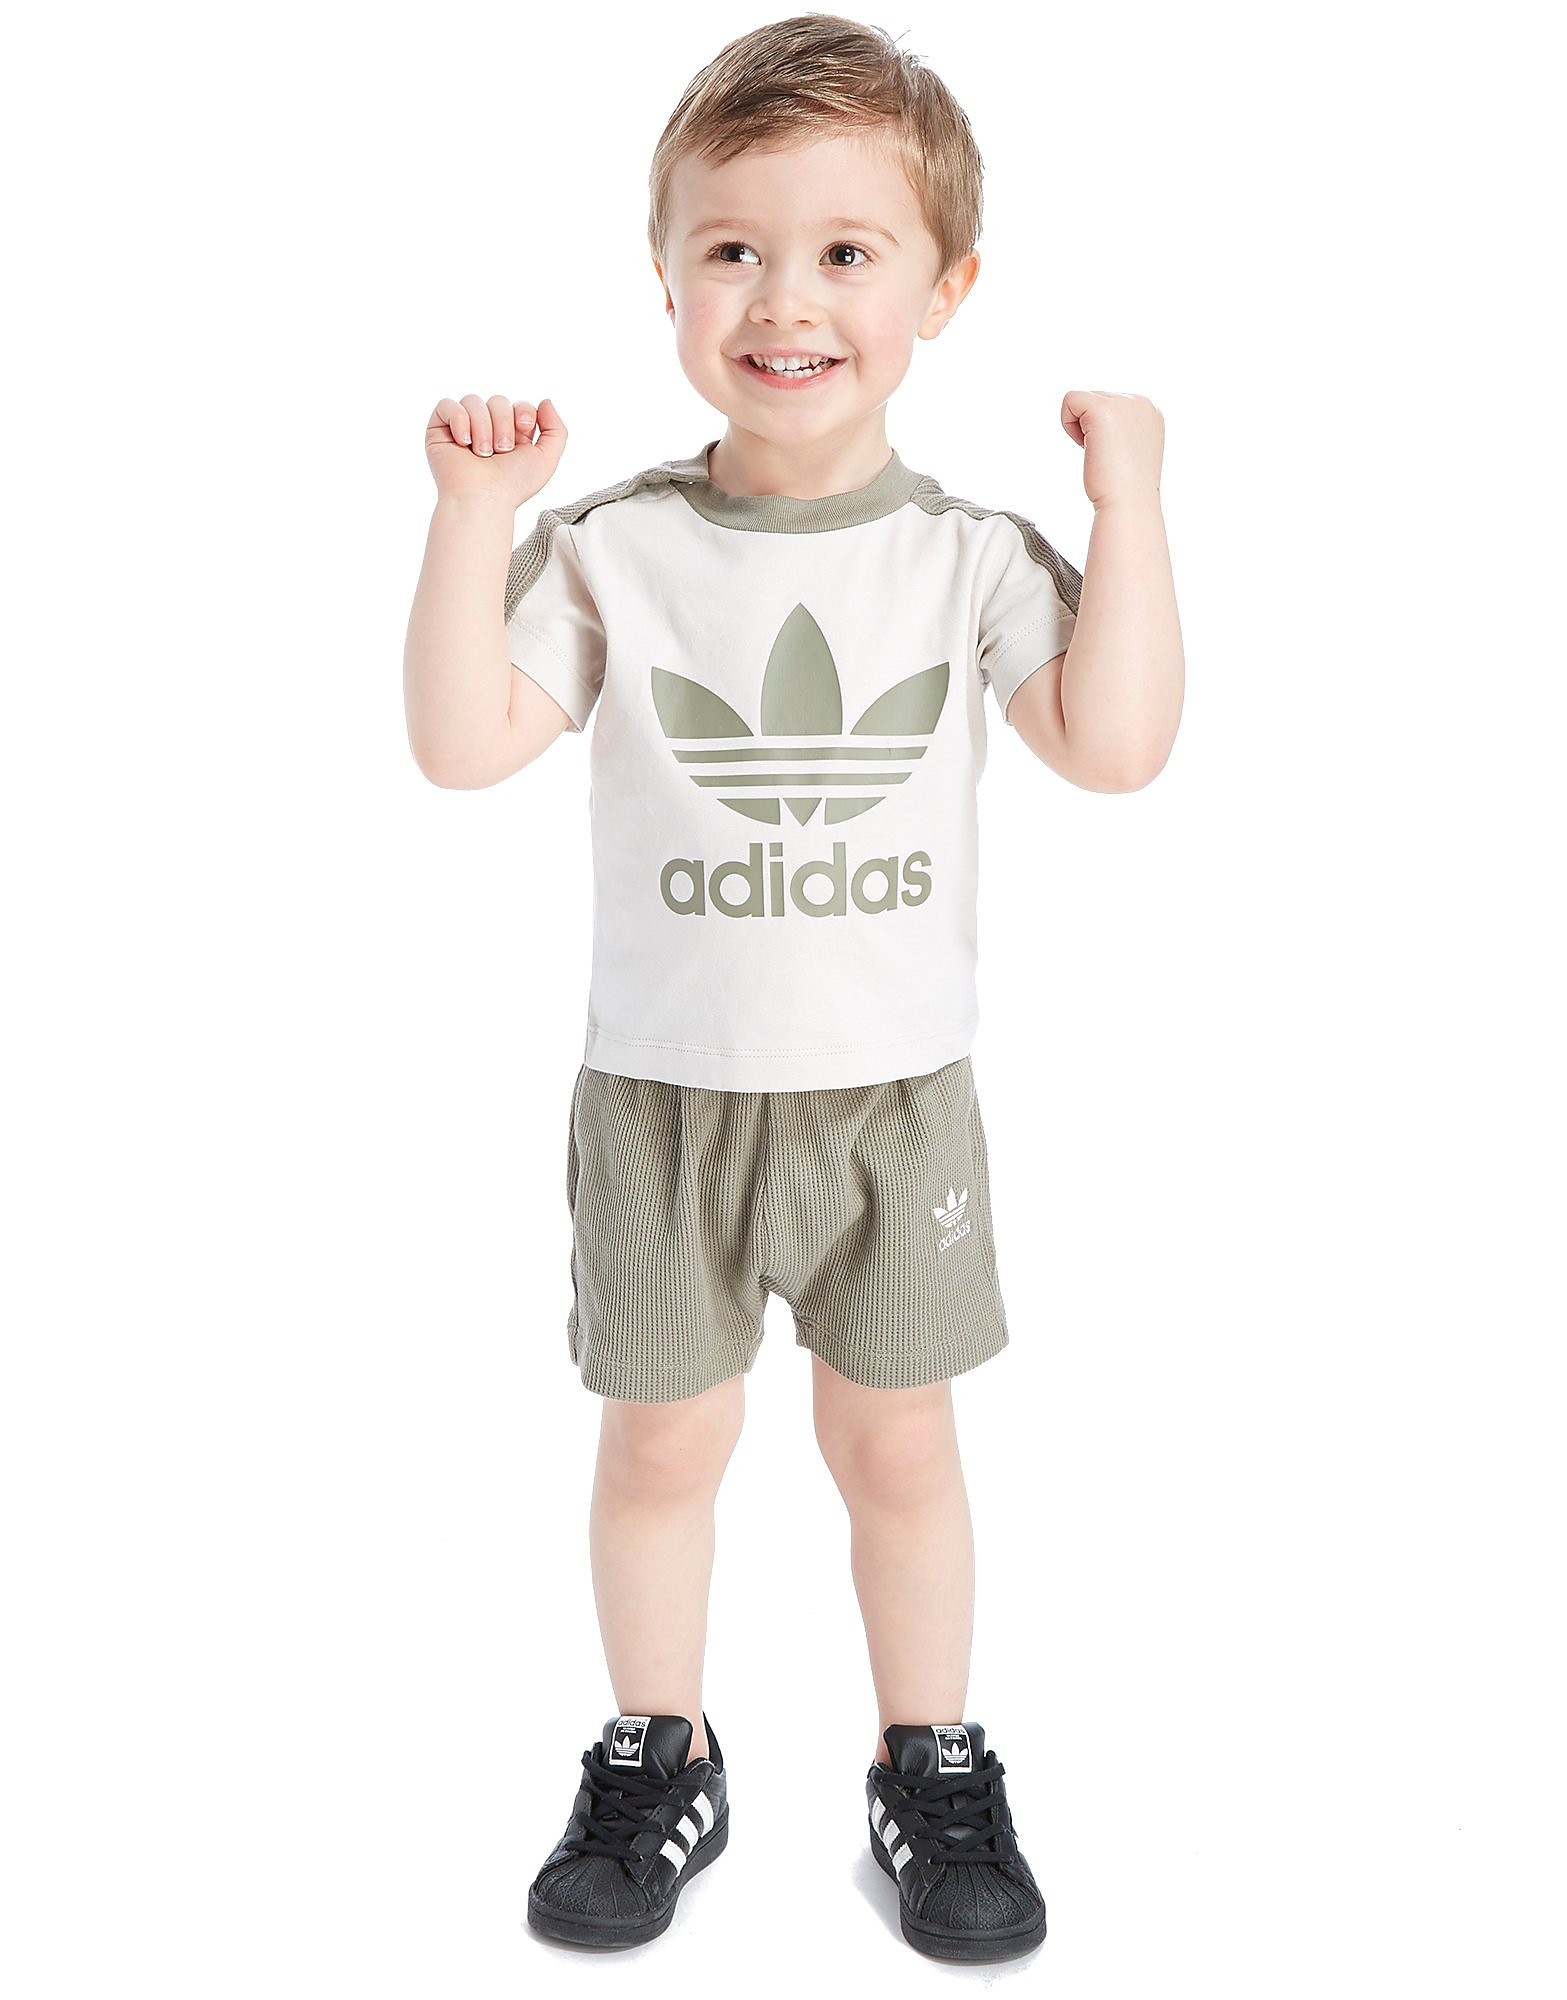 adidas Originals adidias Originals MOA Short Set Baby's